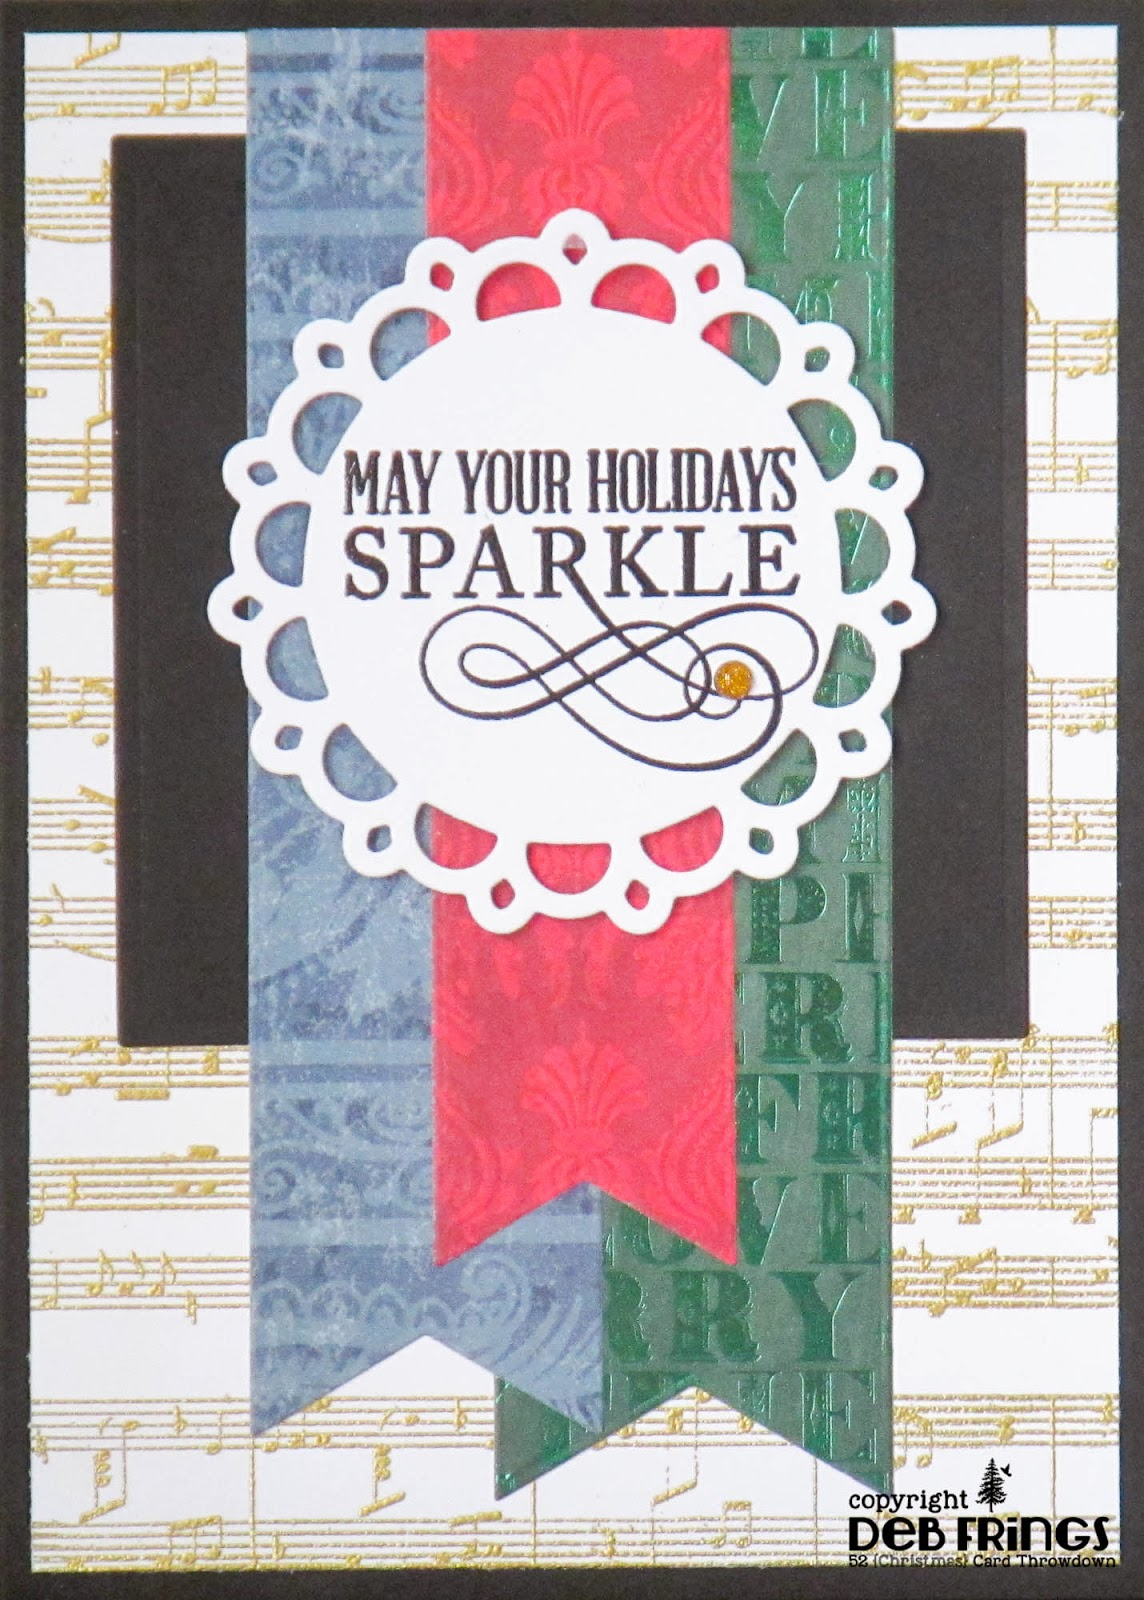 Holidays Sparkle - photo by Deborah Frings - Deborah's Gems